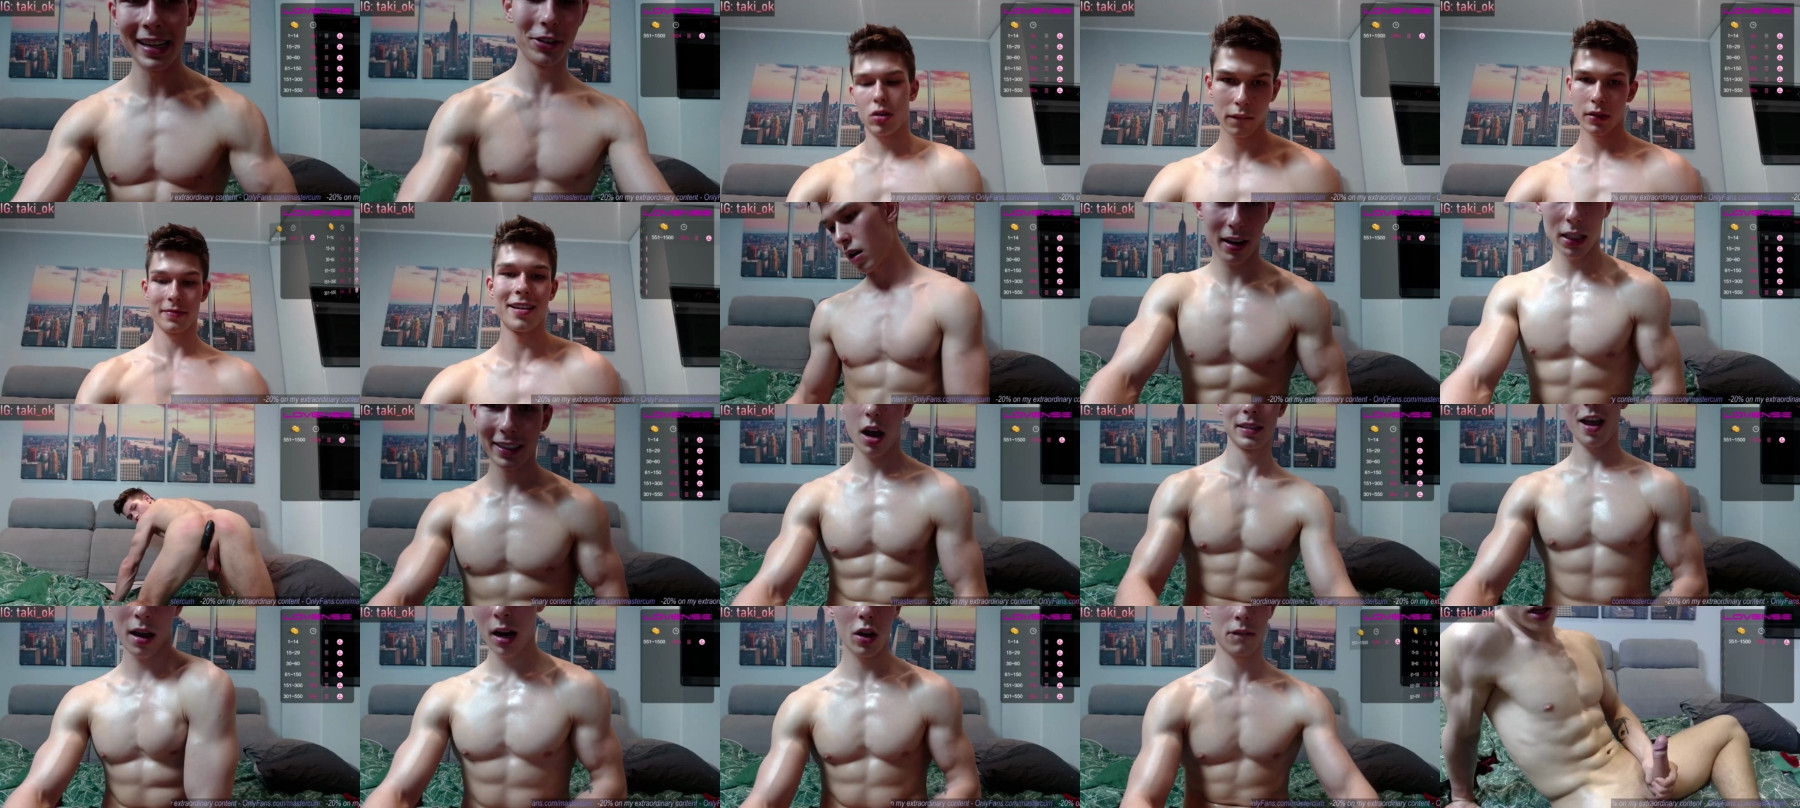 Destroy_Boy Chaturbate 12-05-2021 Male Topless